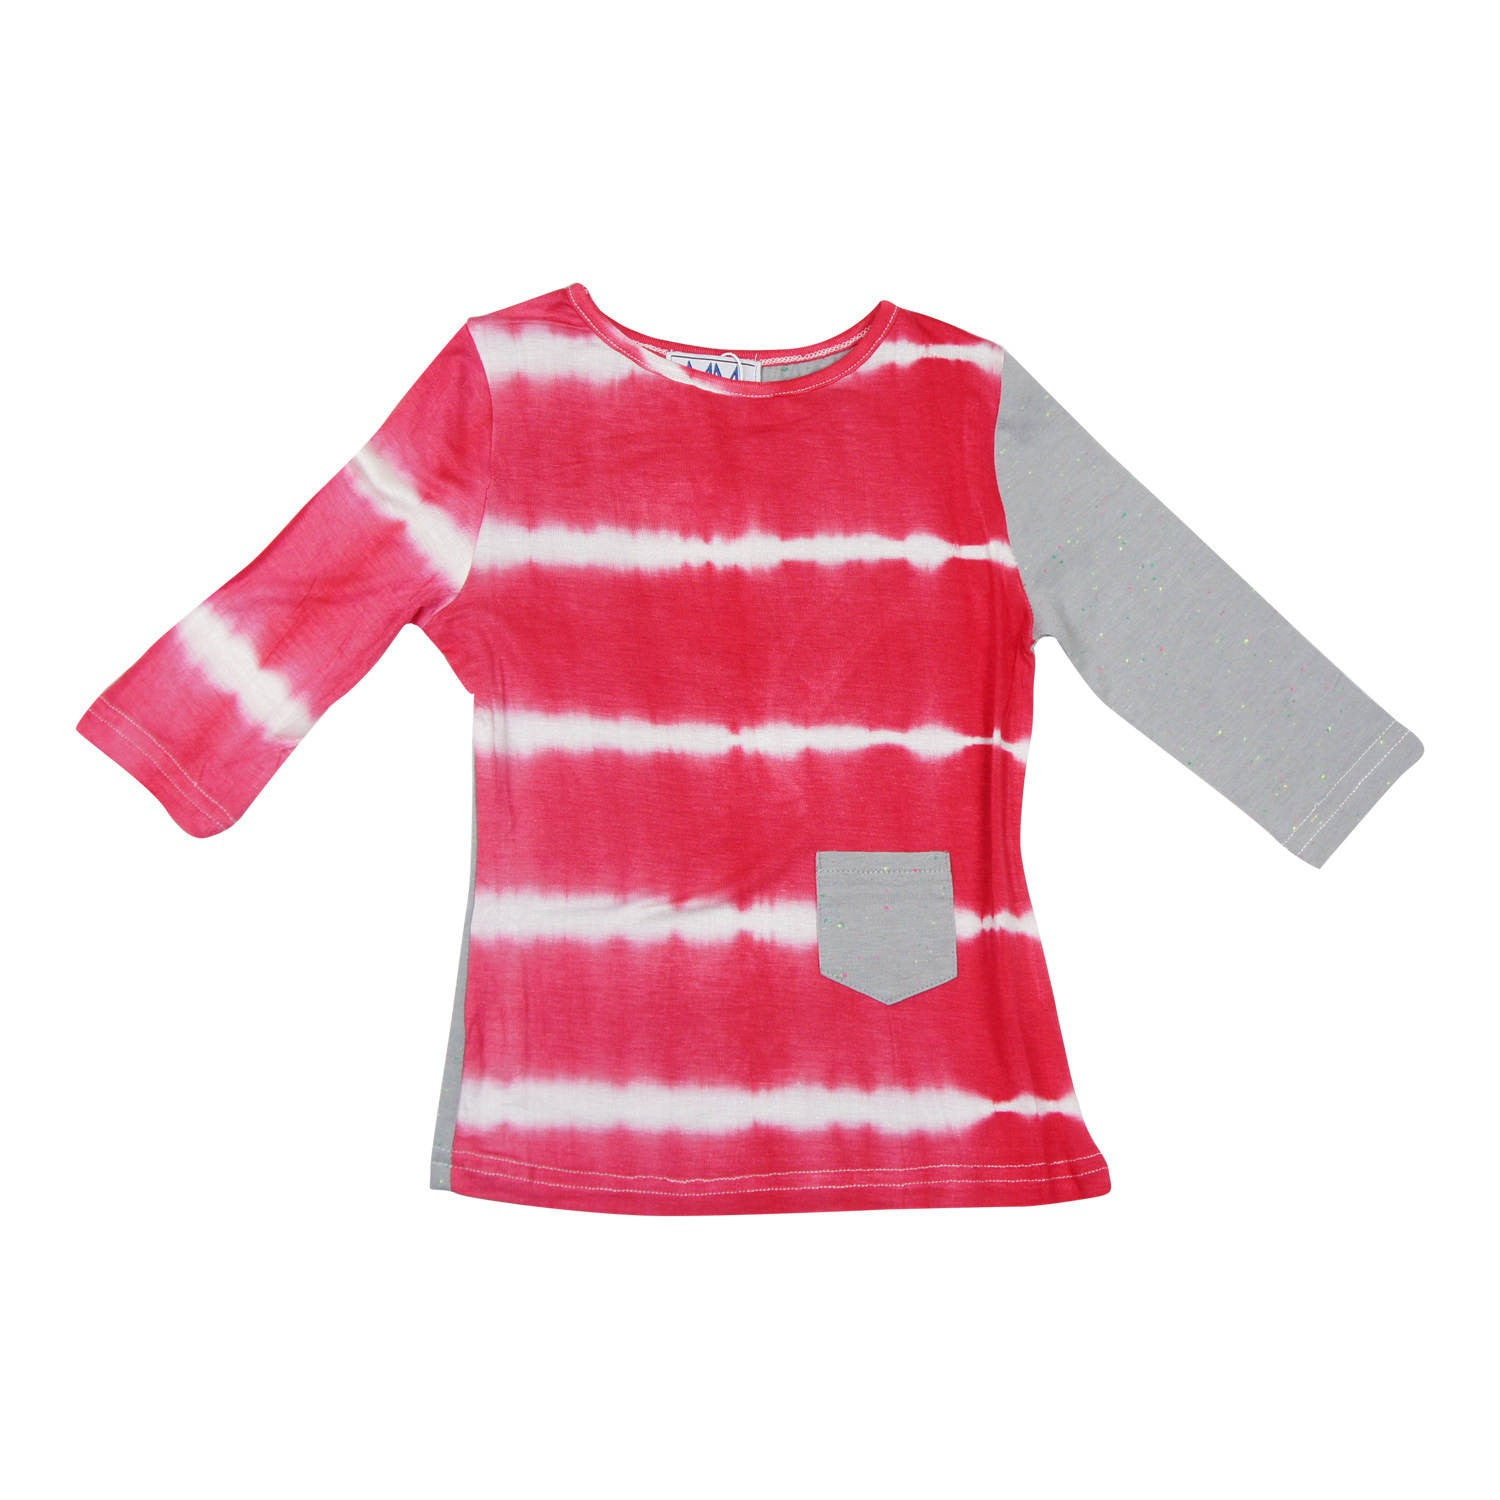 MeMe Salmon Tie-Dye Tee - Young Timers Boutique  - 1